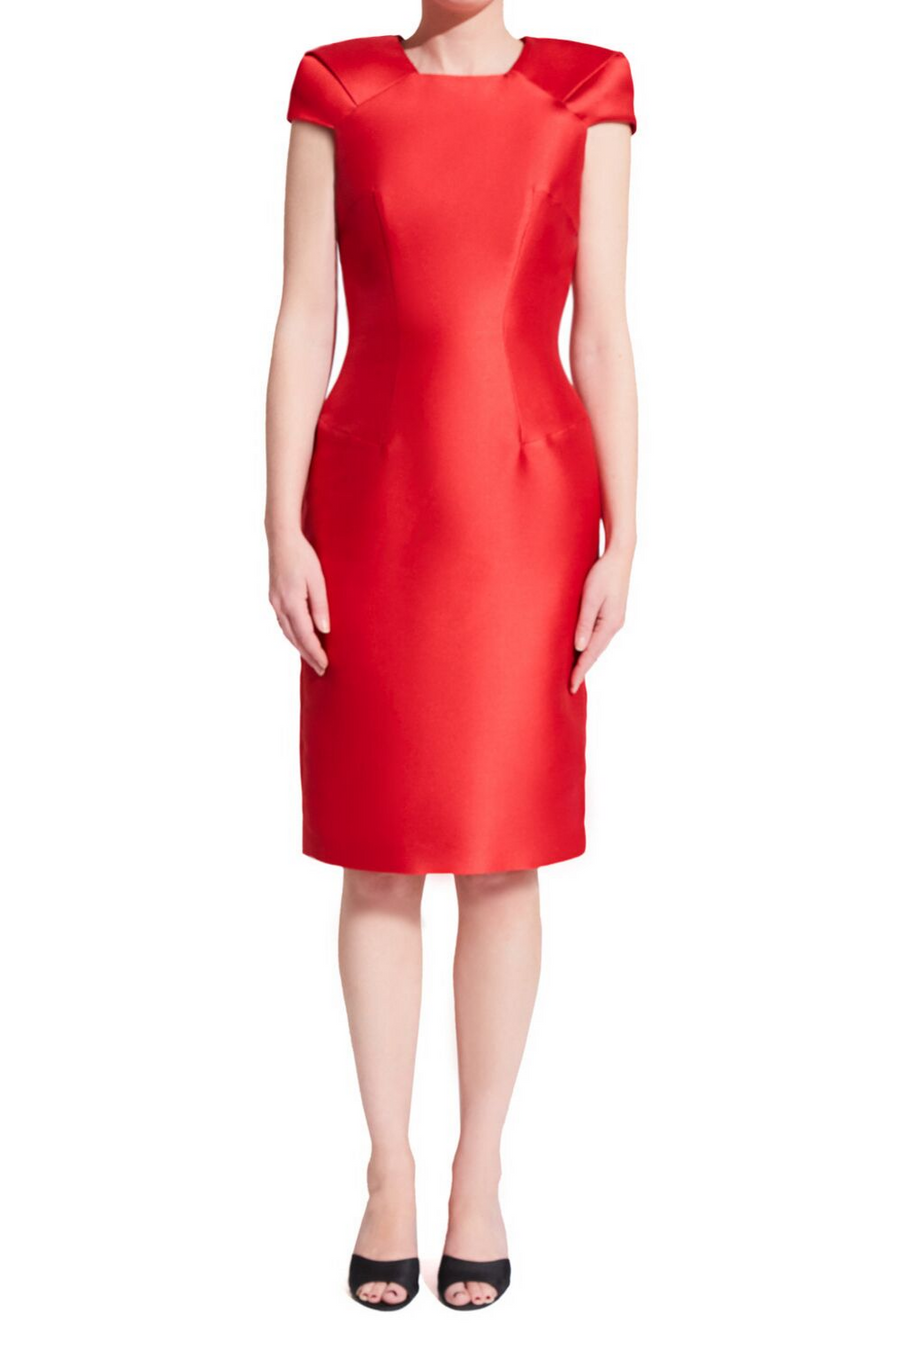 Short red bodycon cocktail dress with square/trapezoid neckline and oragami style cap sleeves